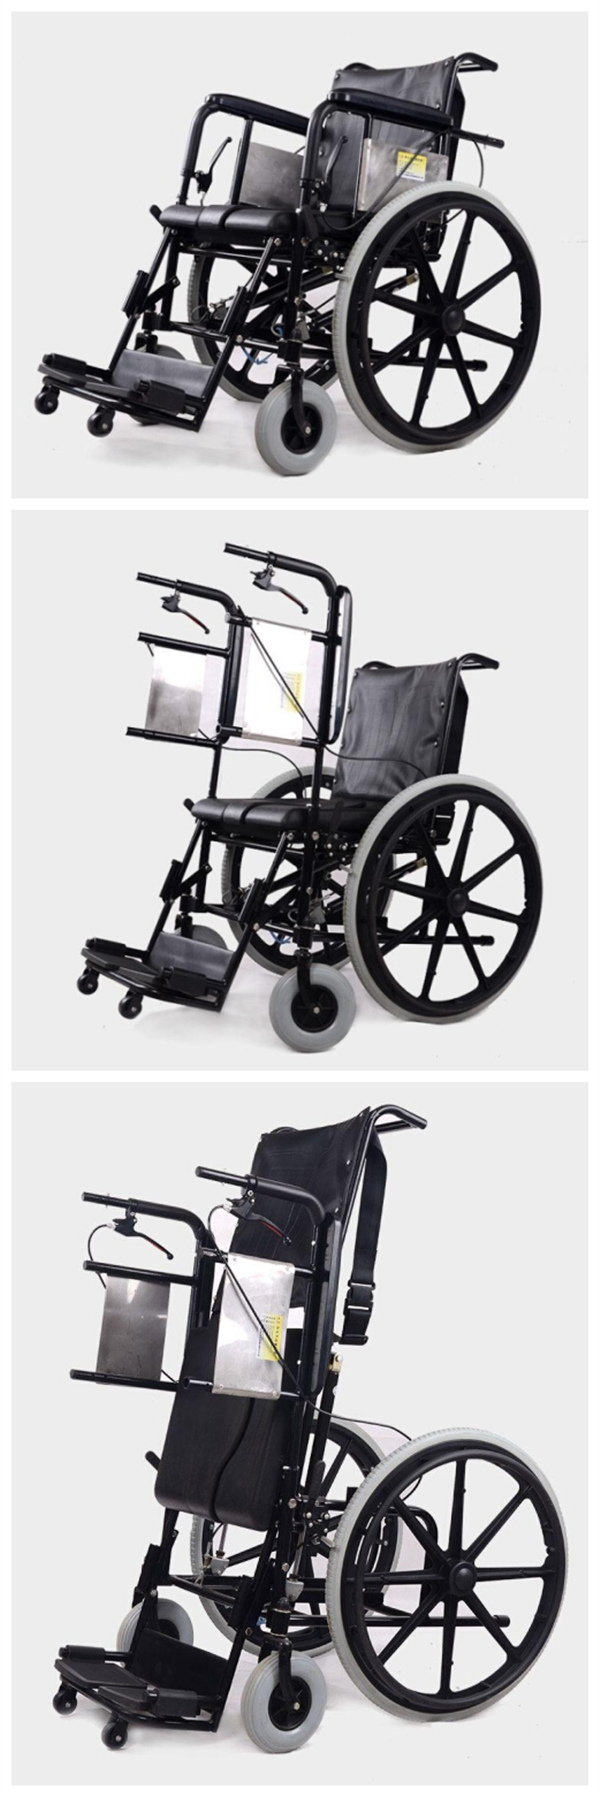 Medical Rehabilitation Wheelchir Manual Stand up Wheelchair for Paralysis Patient